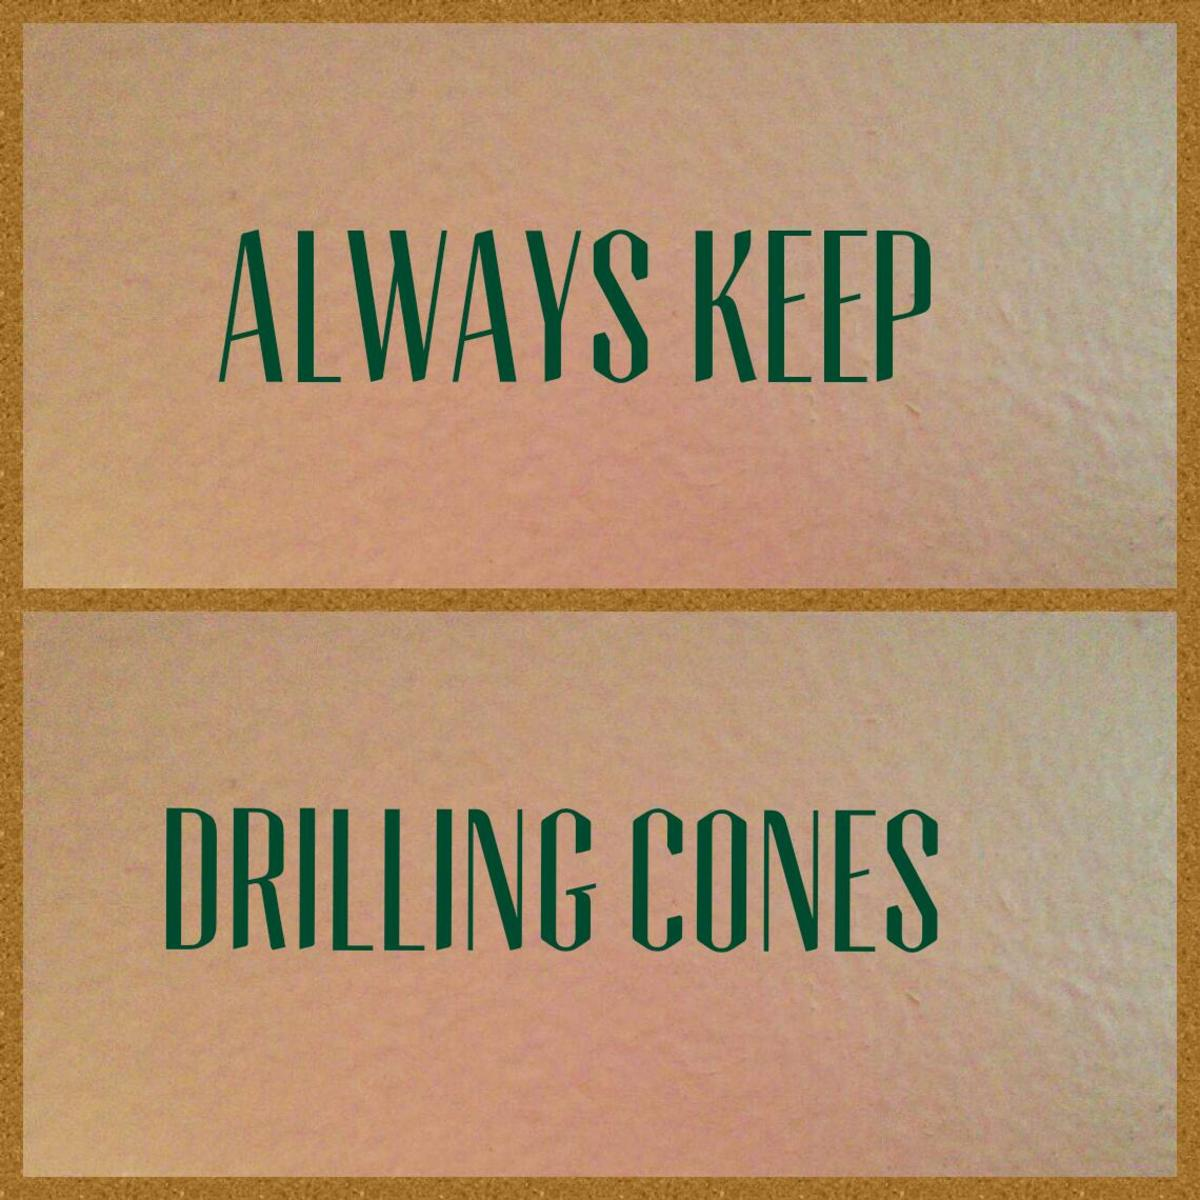 Drilling cones come in event chests and can be bought in n the nick shop. Never discard them!